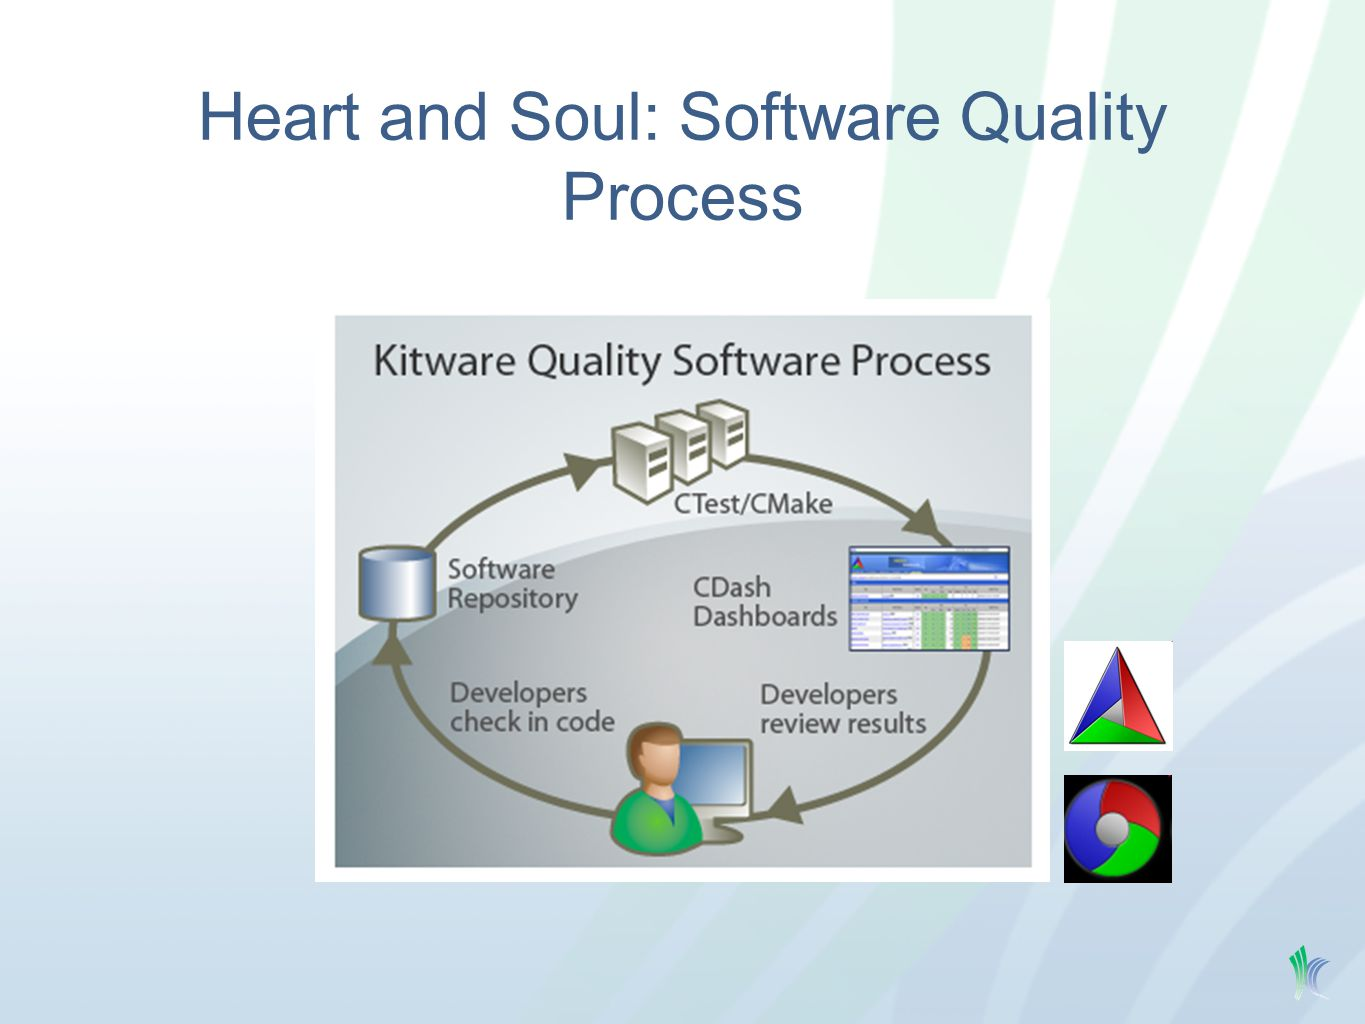 Heart and Soul: Software Quality Process